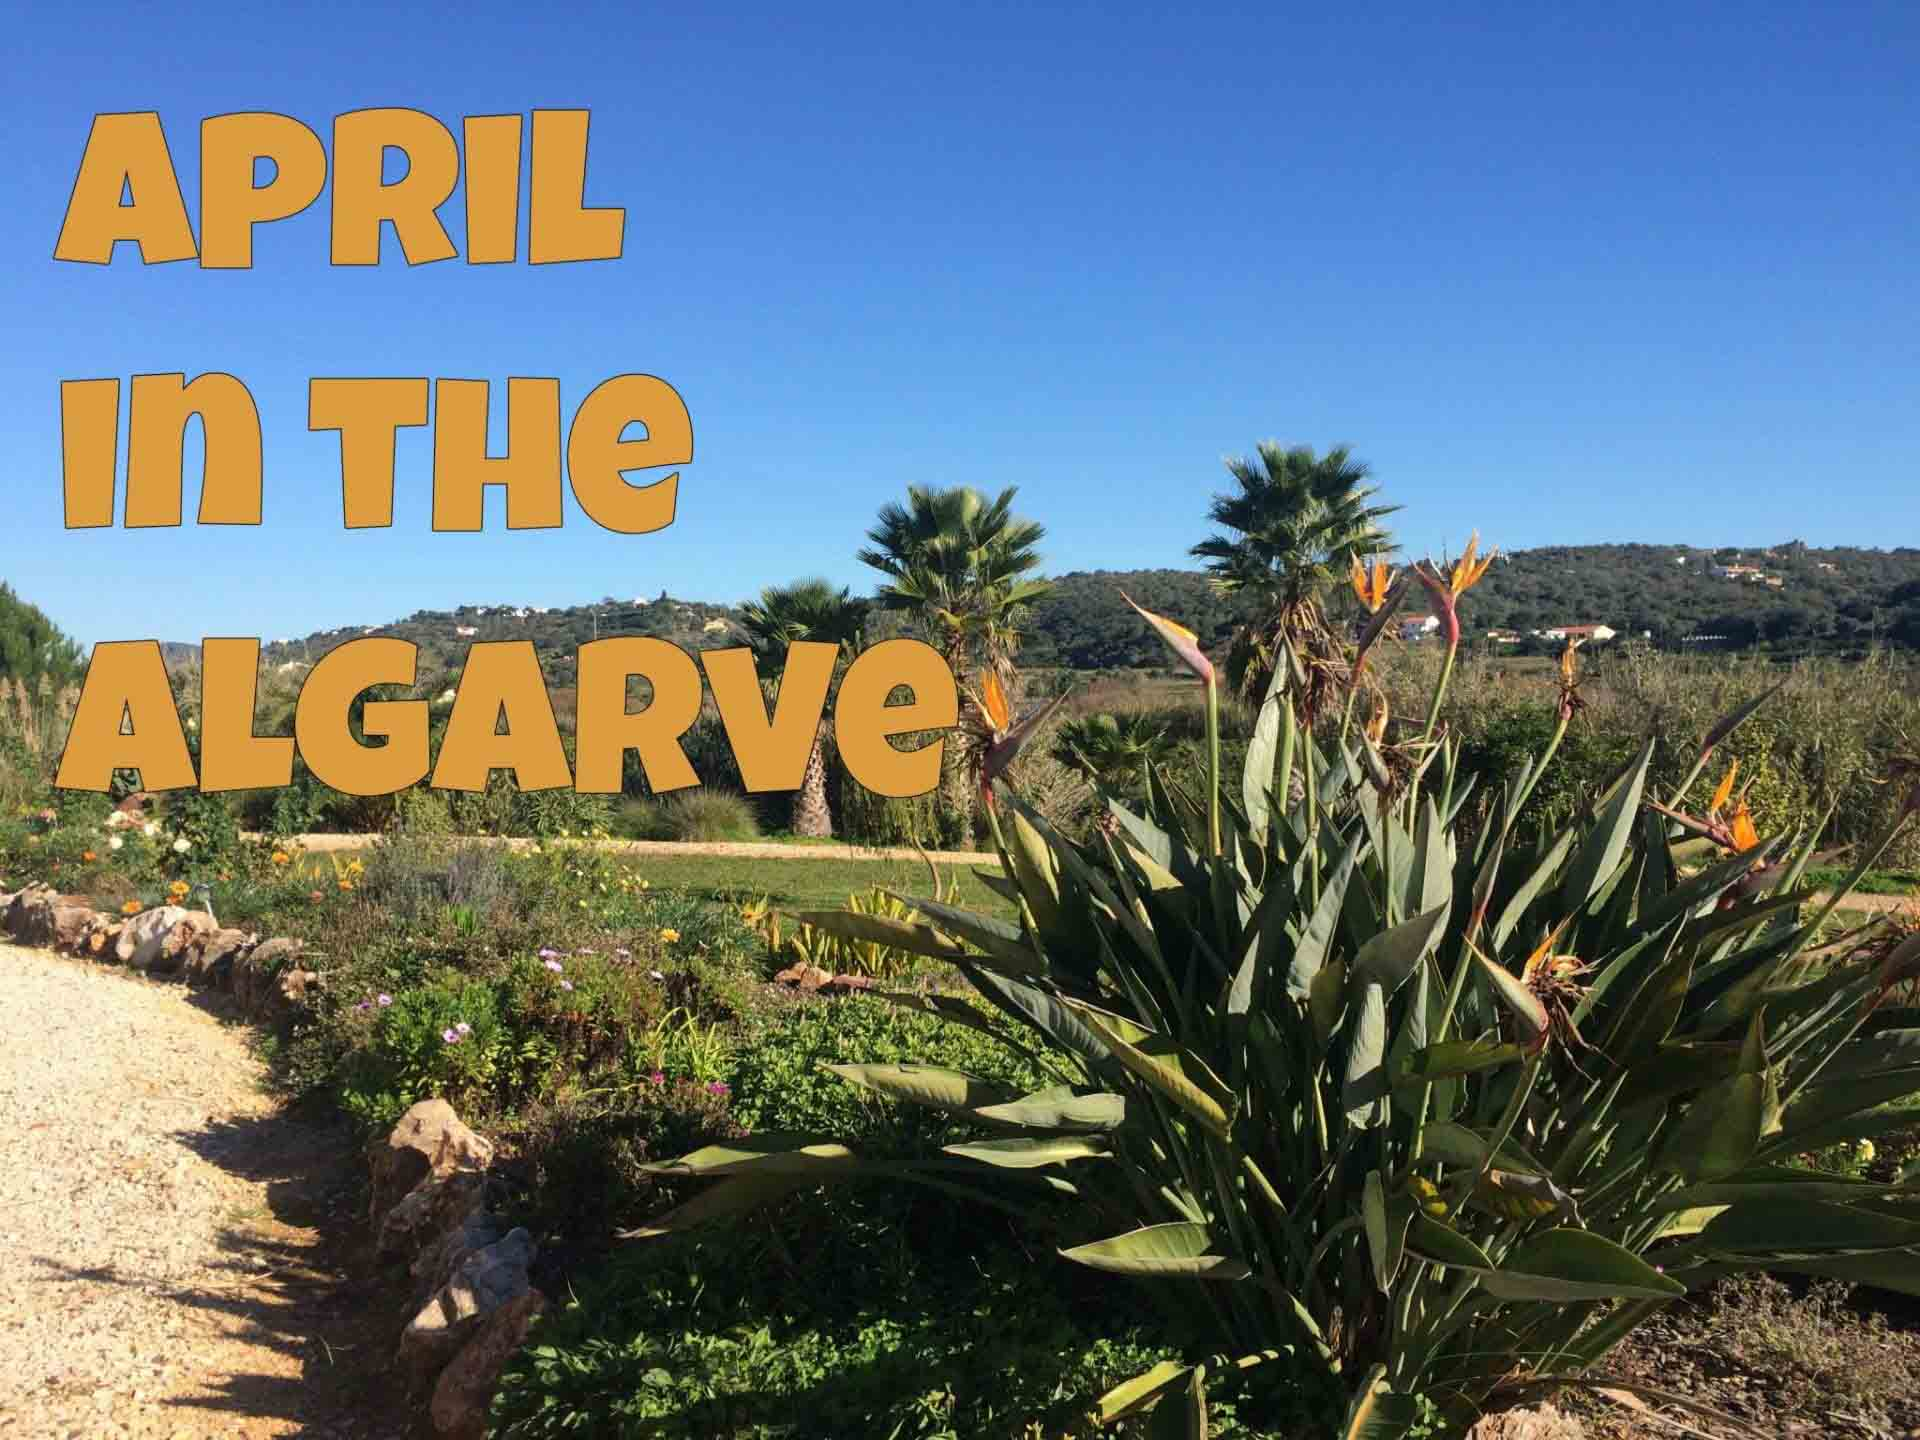 Algarve in April